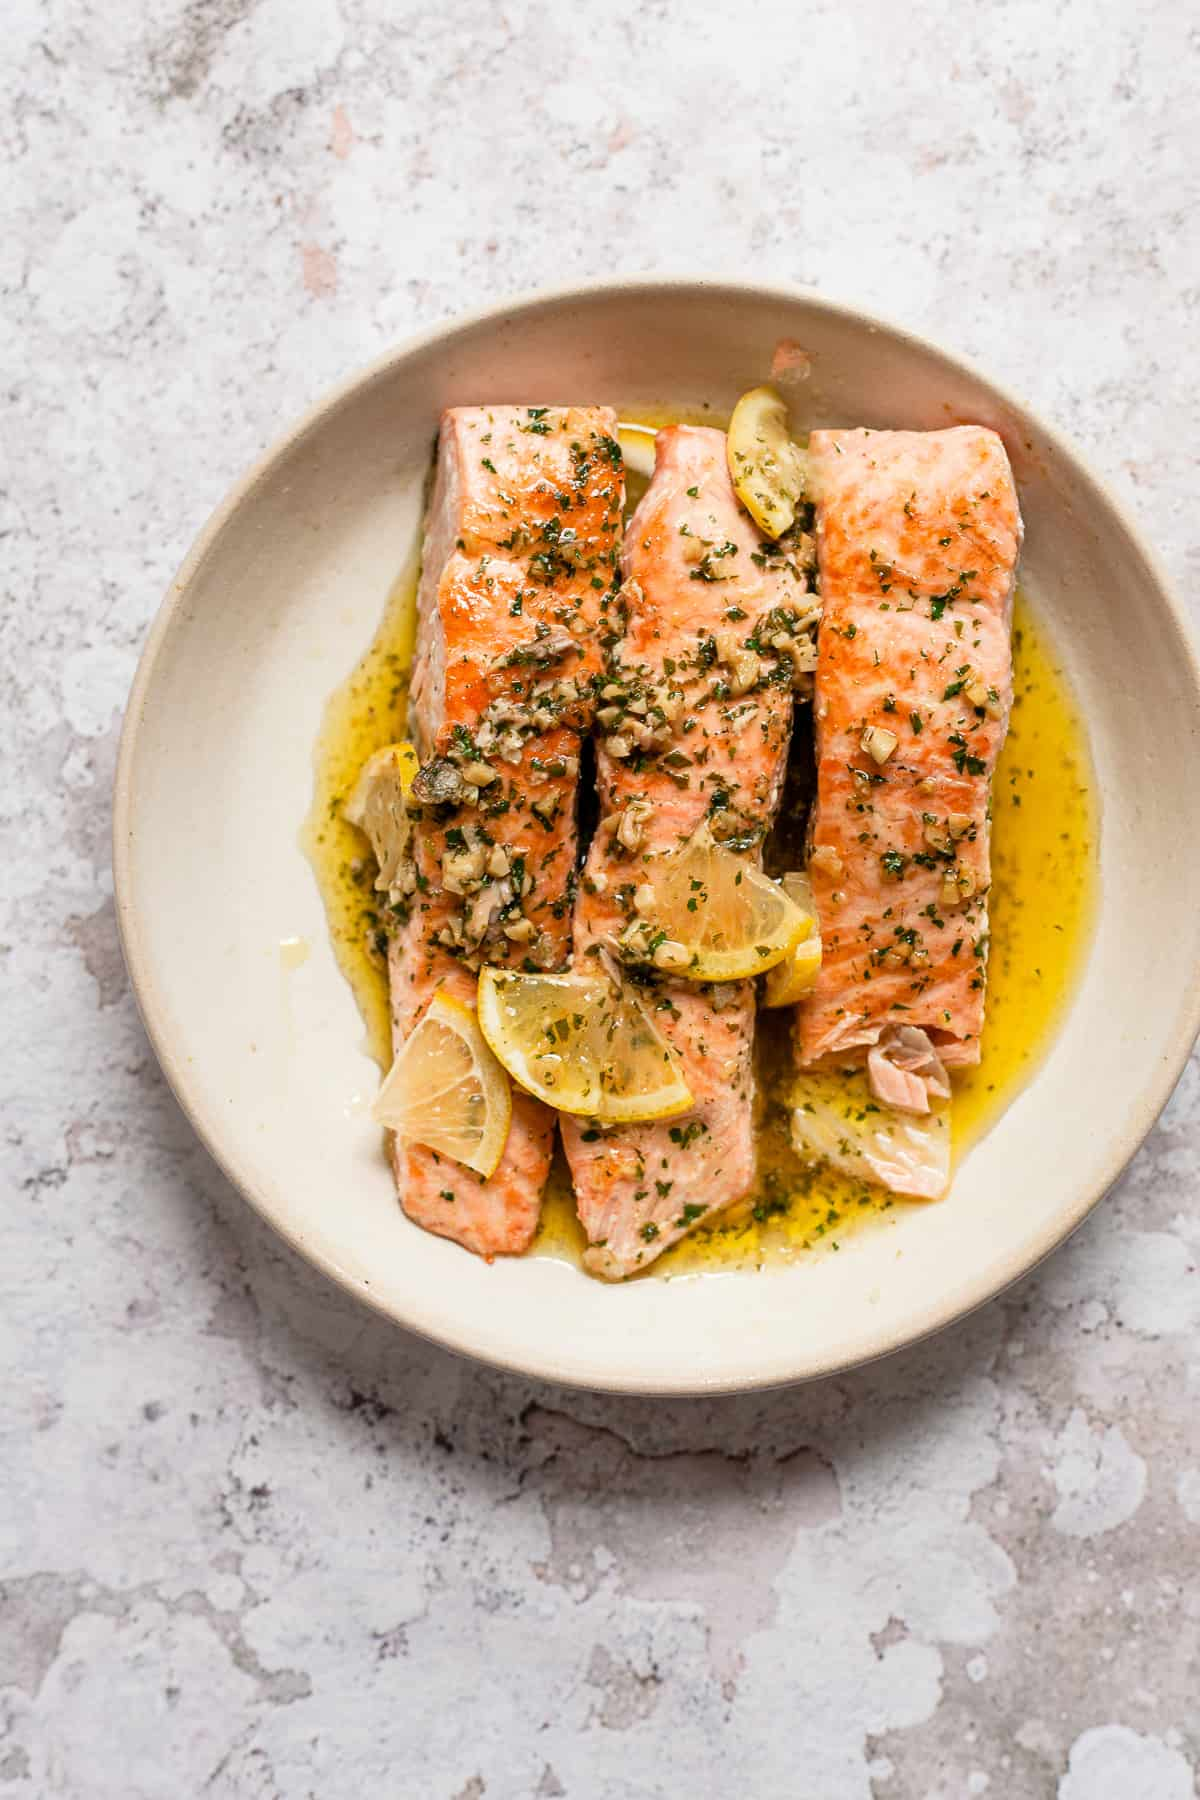 Salmon fillets with slices of lemon and garlic butter.